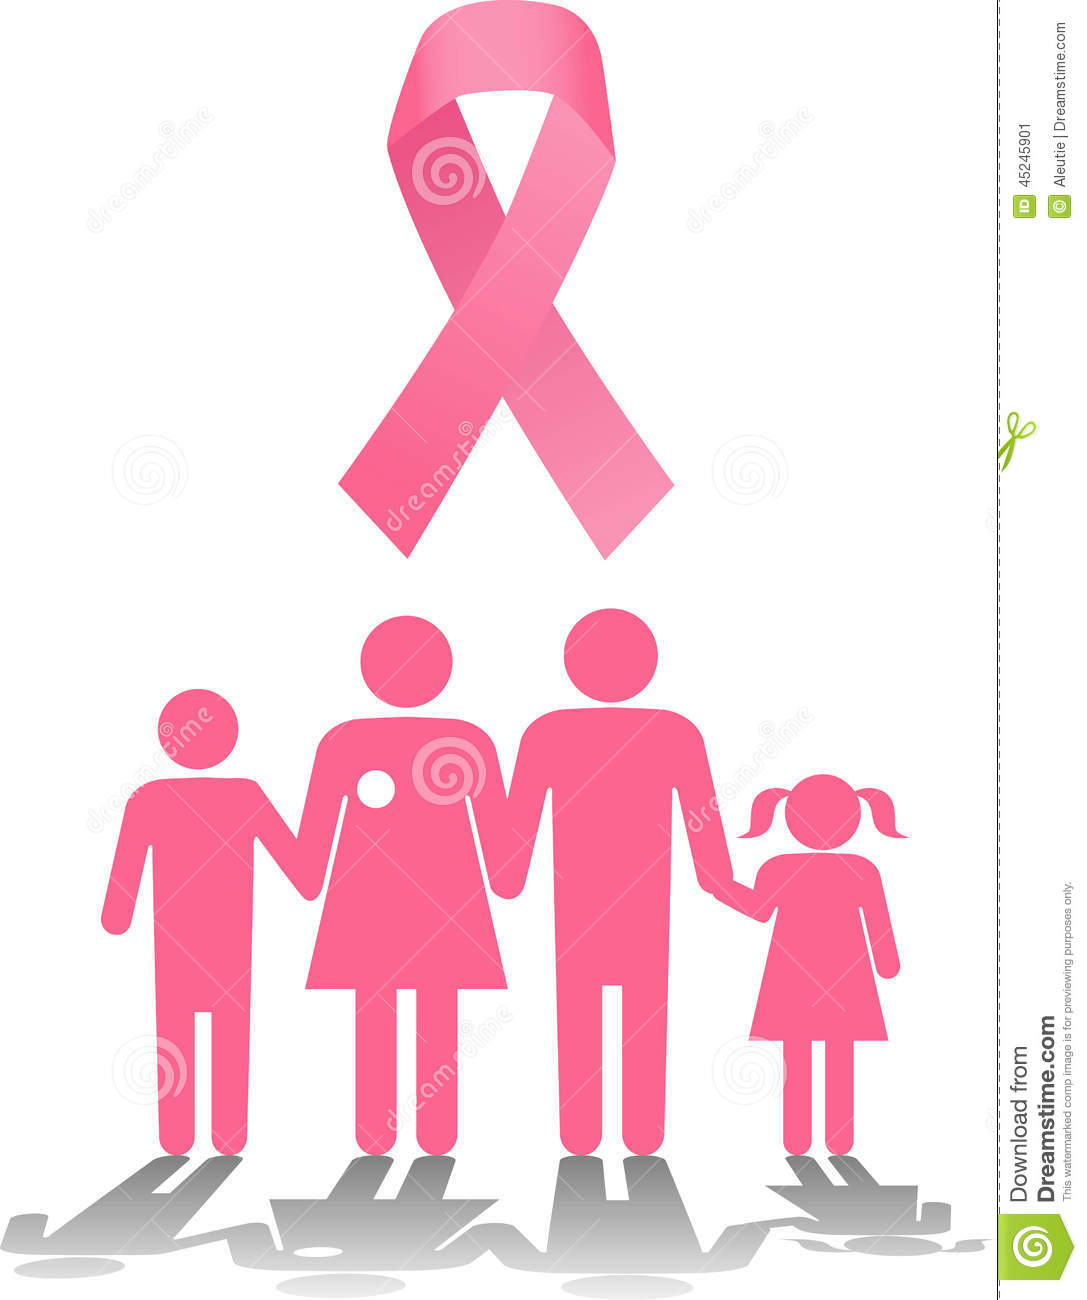 Breast cancer survival family support stock vector illustration breast cancer survival family support buycottarizona